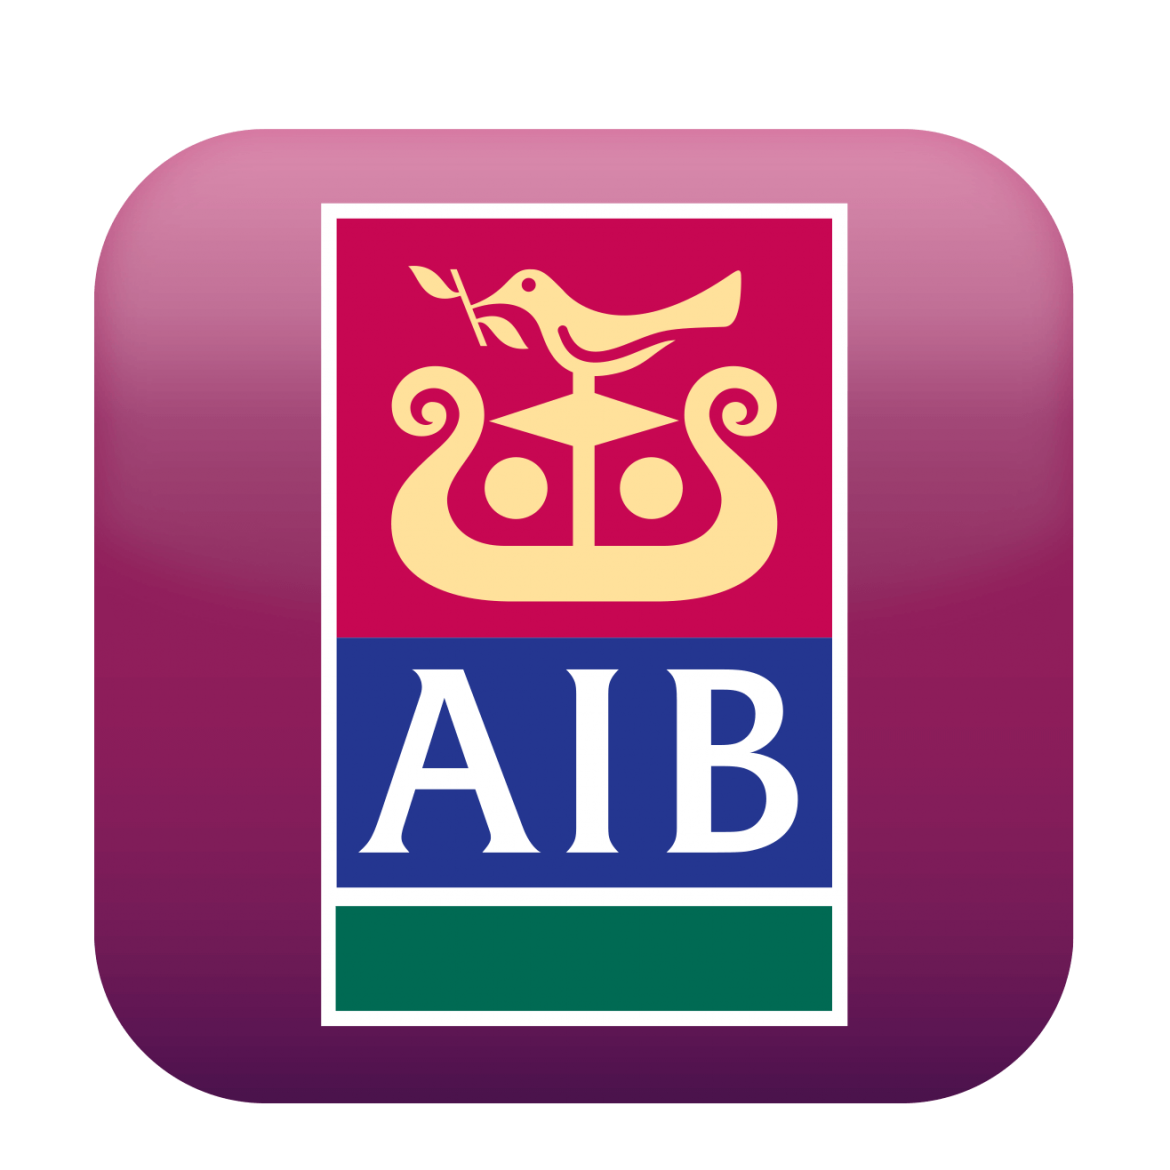 Aib bank dundalk town range of financial products and services so whether you need current or savings account a mortgage home or travel insurance a loan credit card reheart Image collections